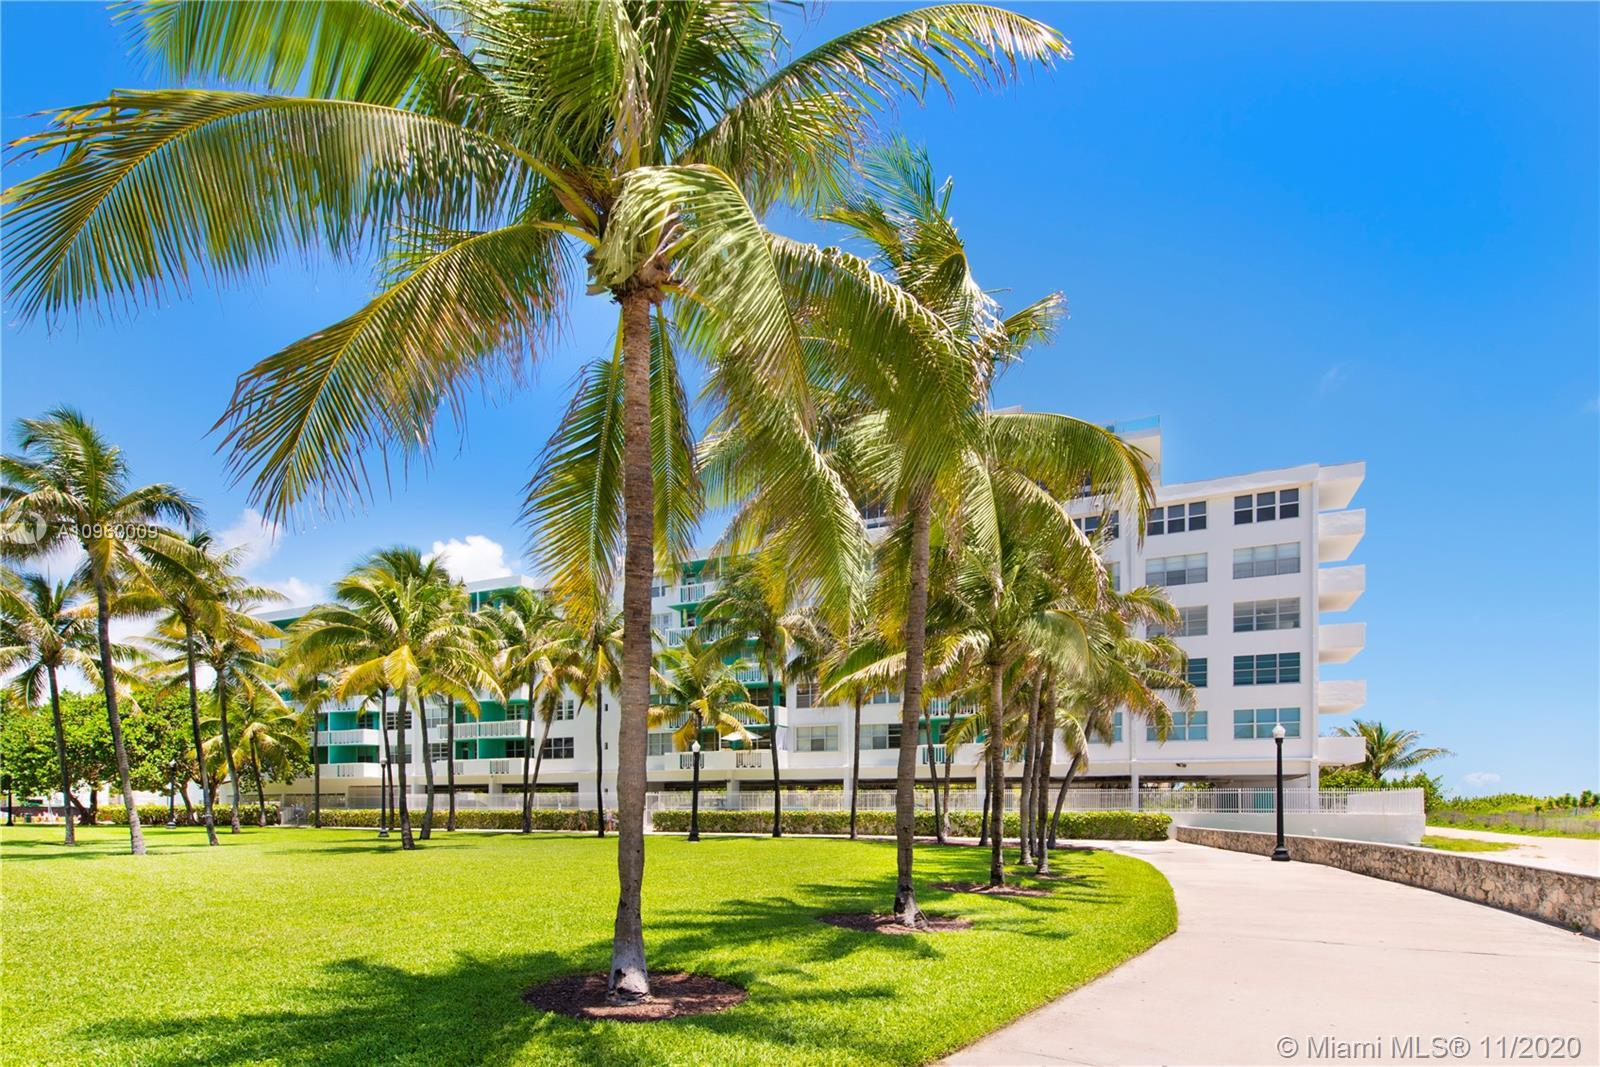 The ultimate ocean view Beach Pad on the sand on Miami Beach's top location! No expense spared in th